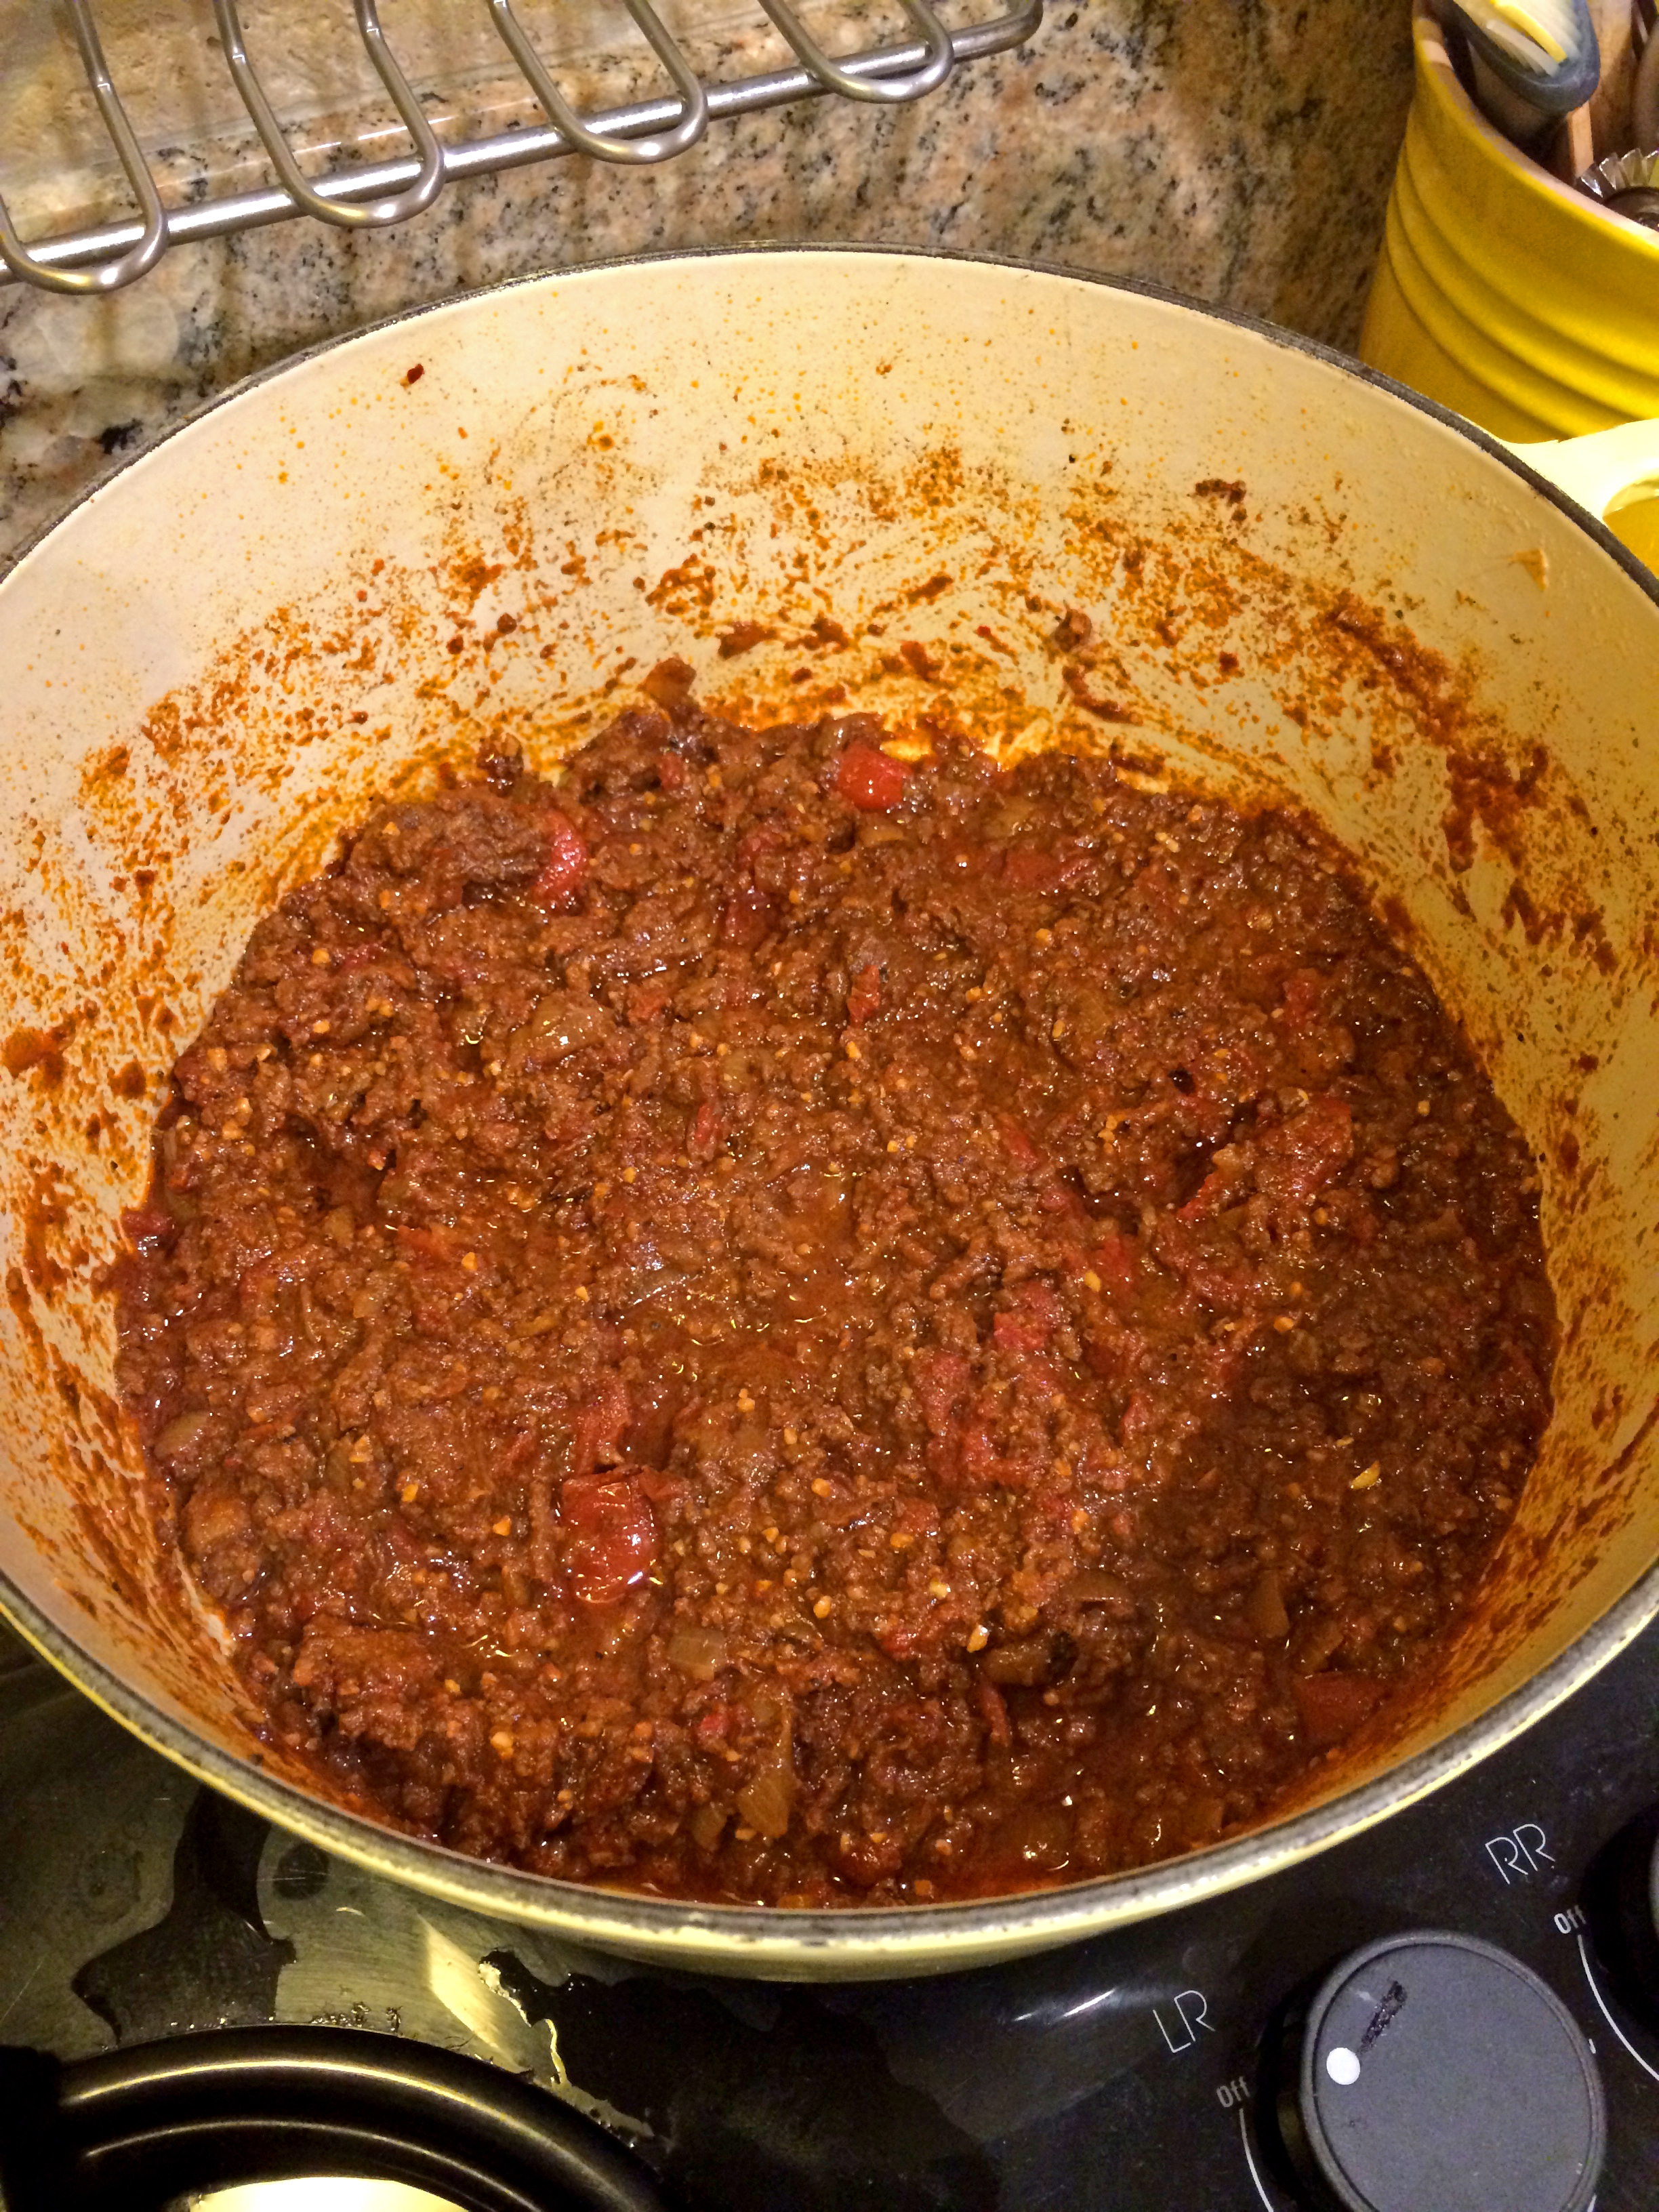 Dave's 5 Alarm Chili - Kevin Is Cooking